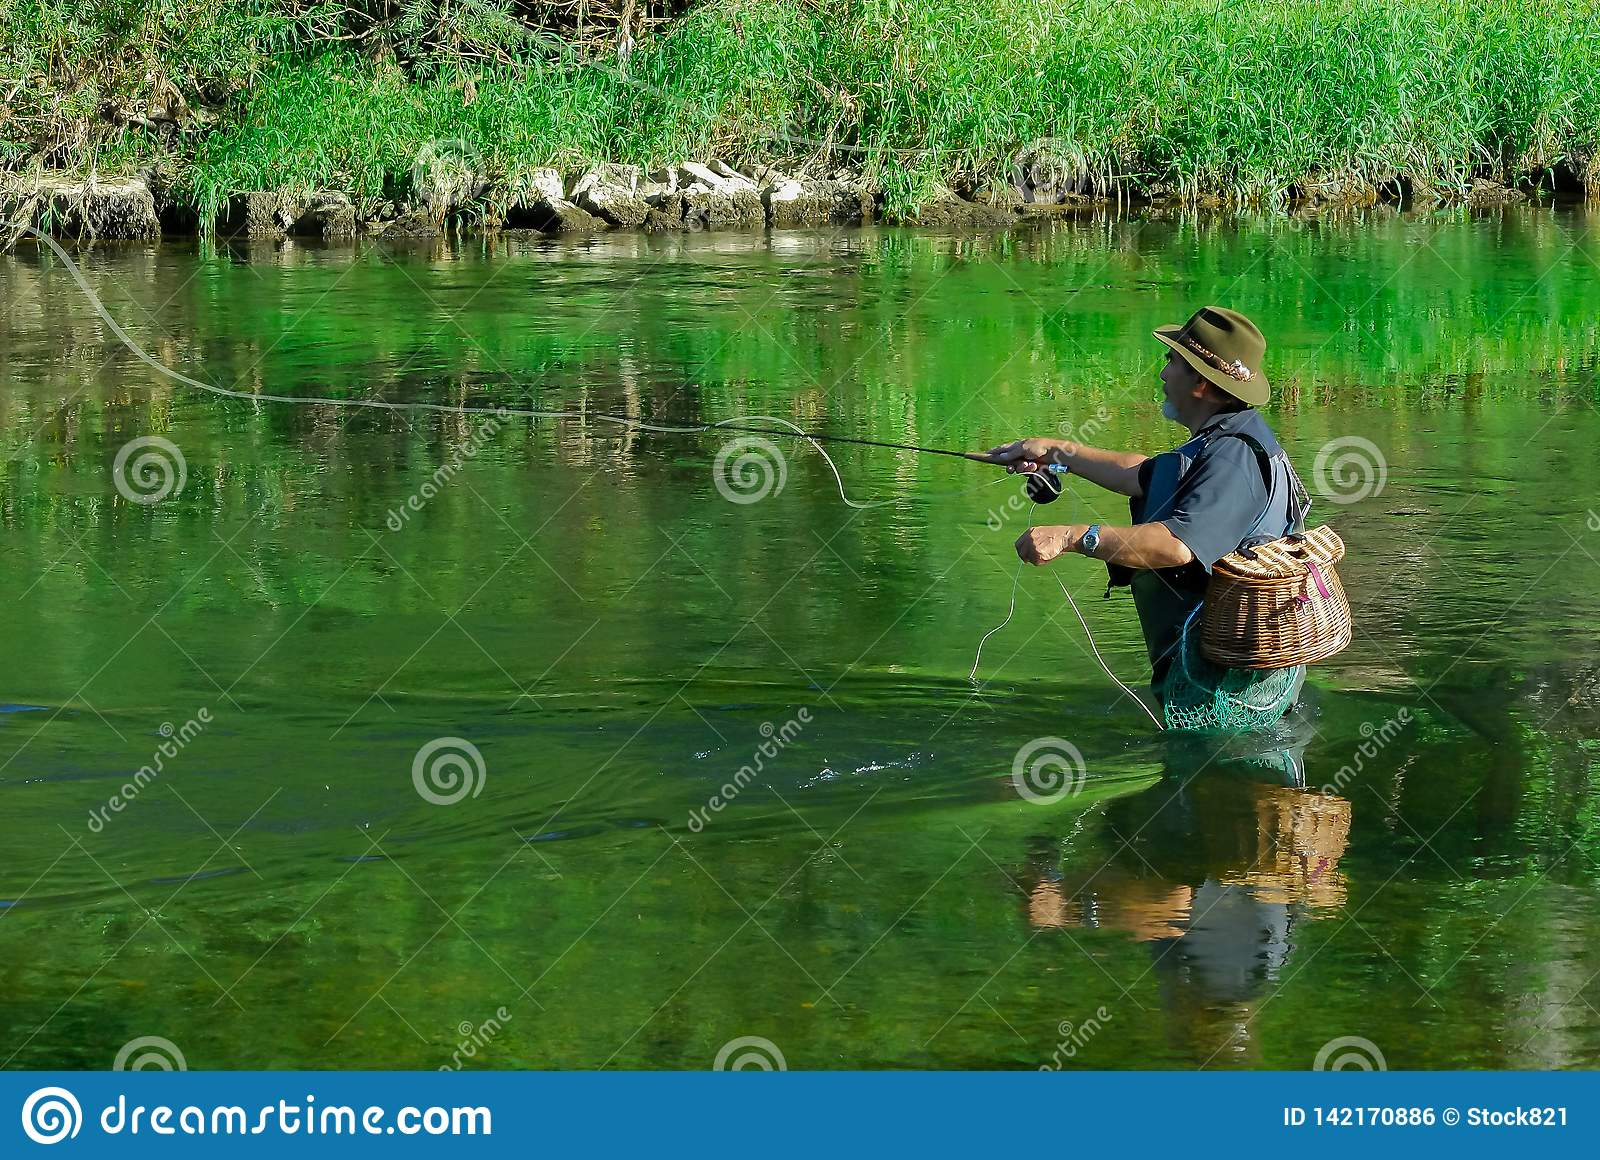 Fly fisherman in the river after Trout